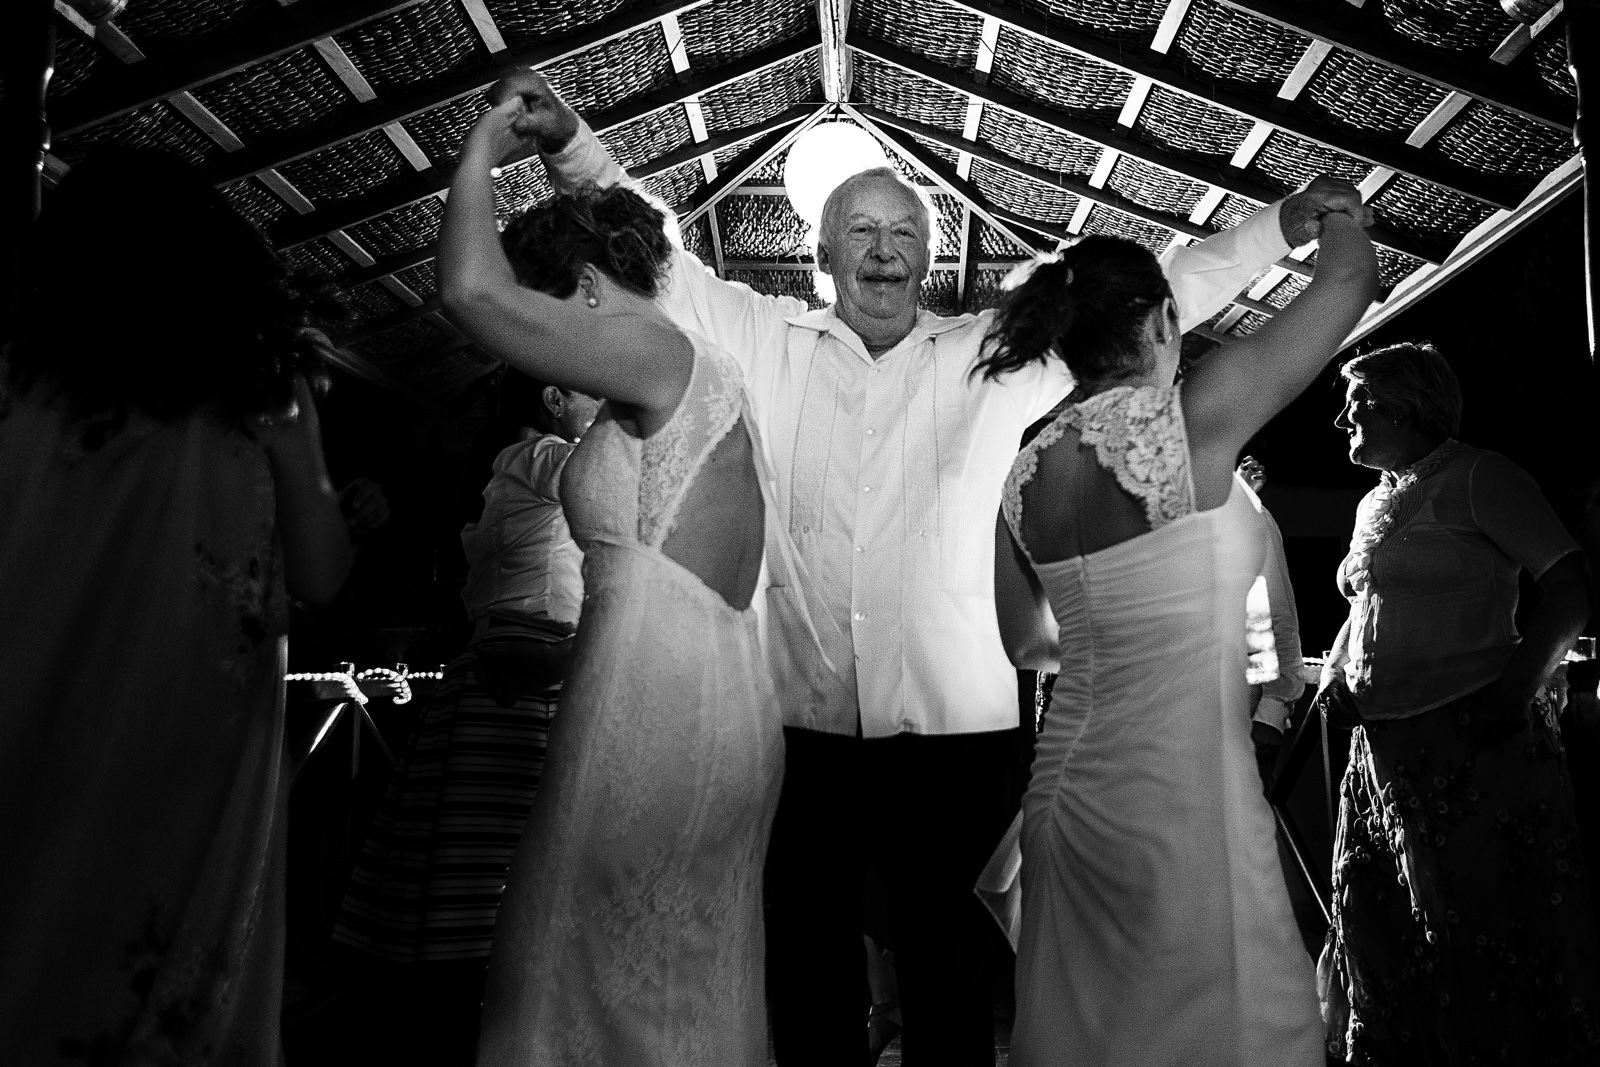 father_bride_and_bride_dancing